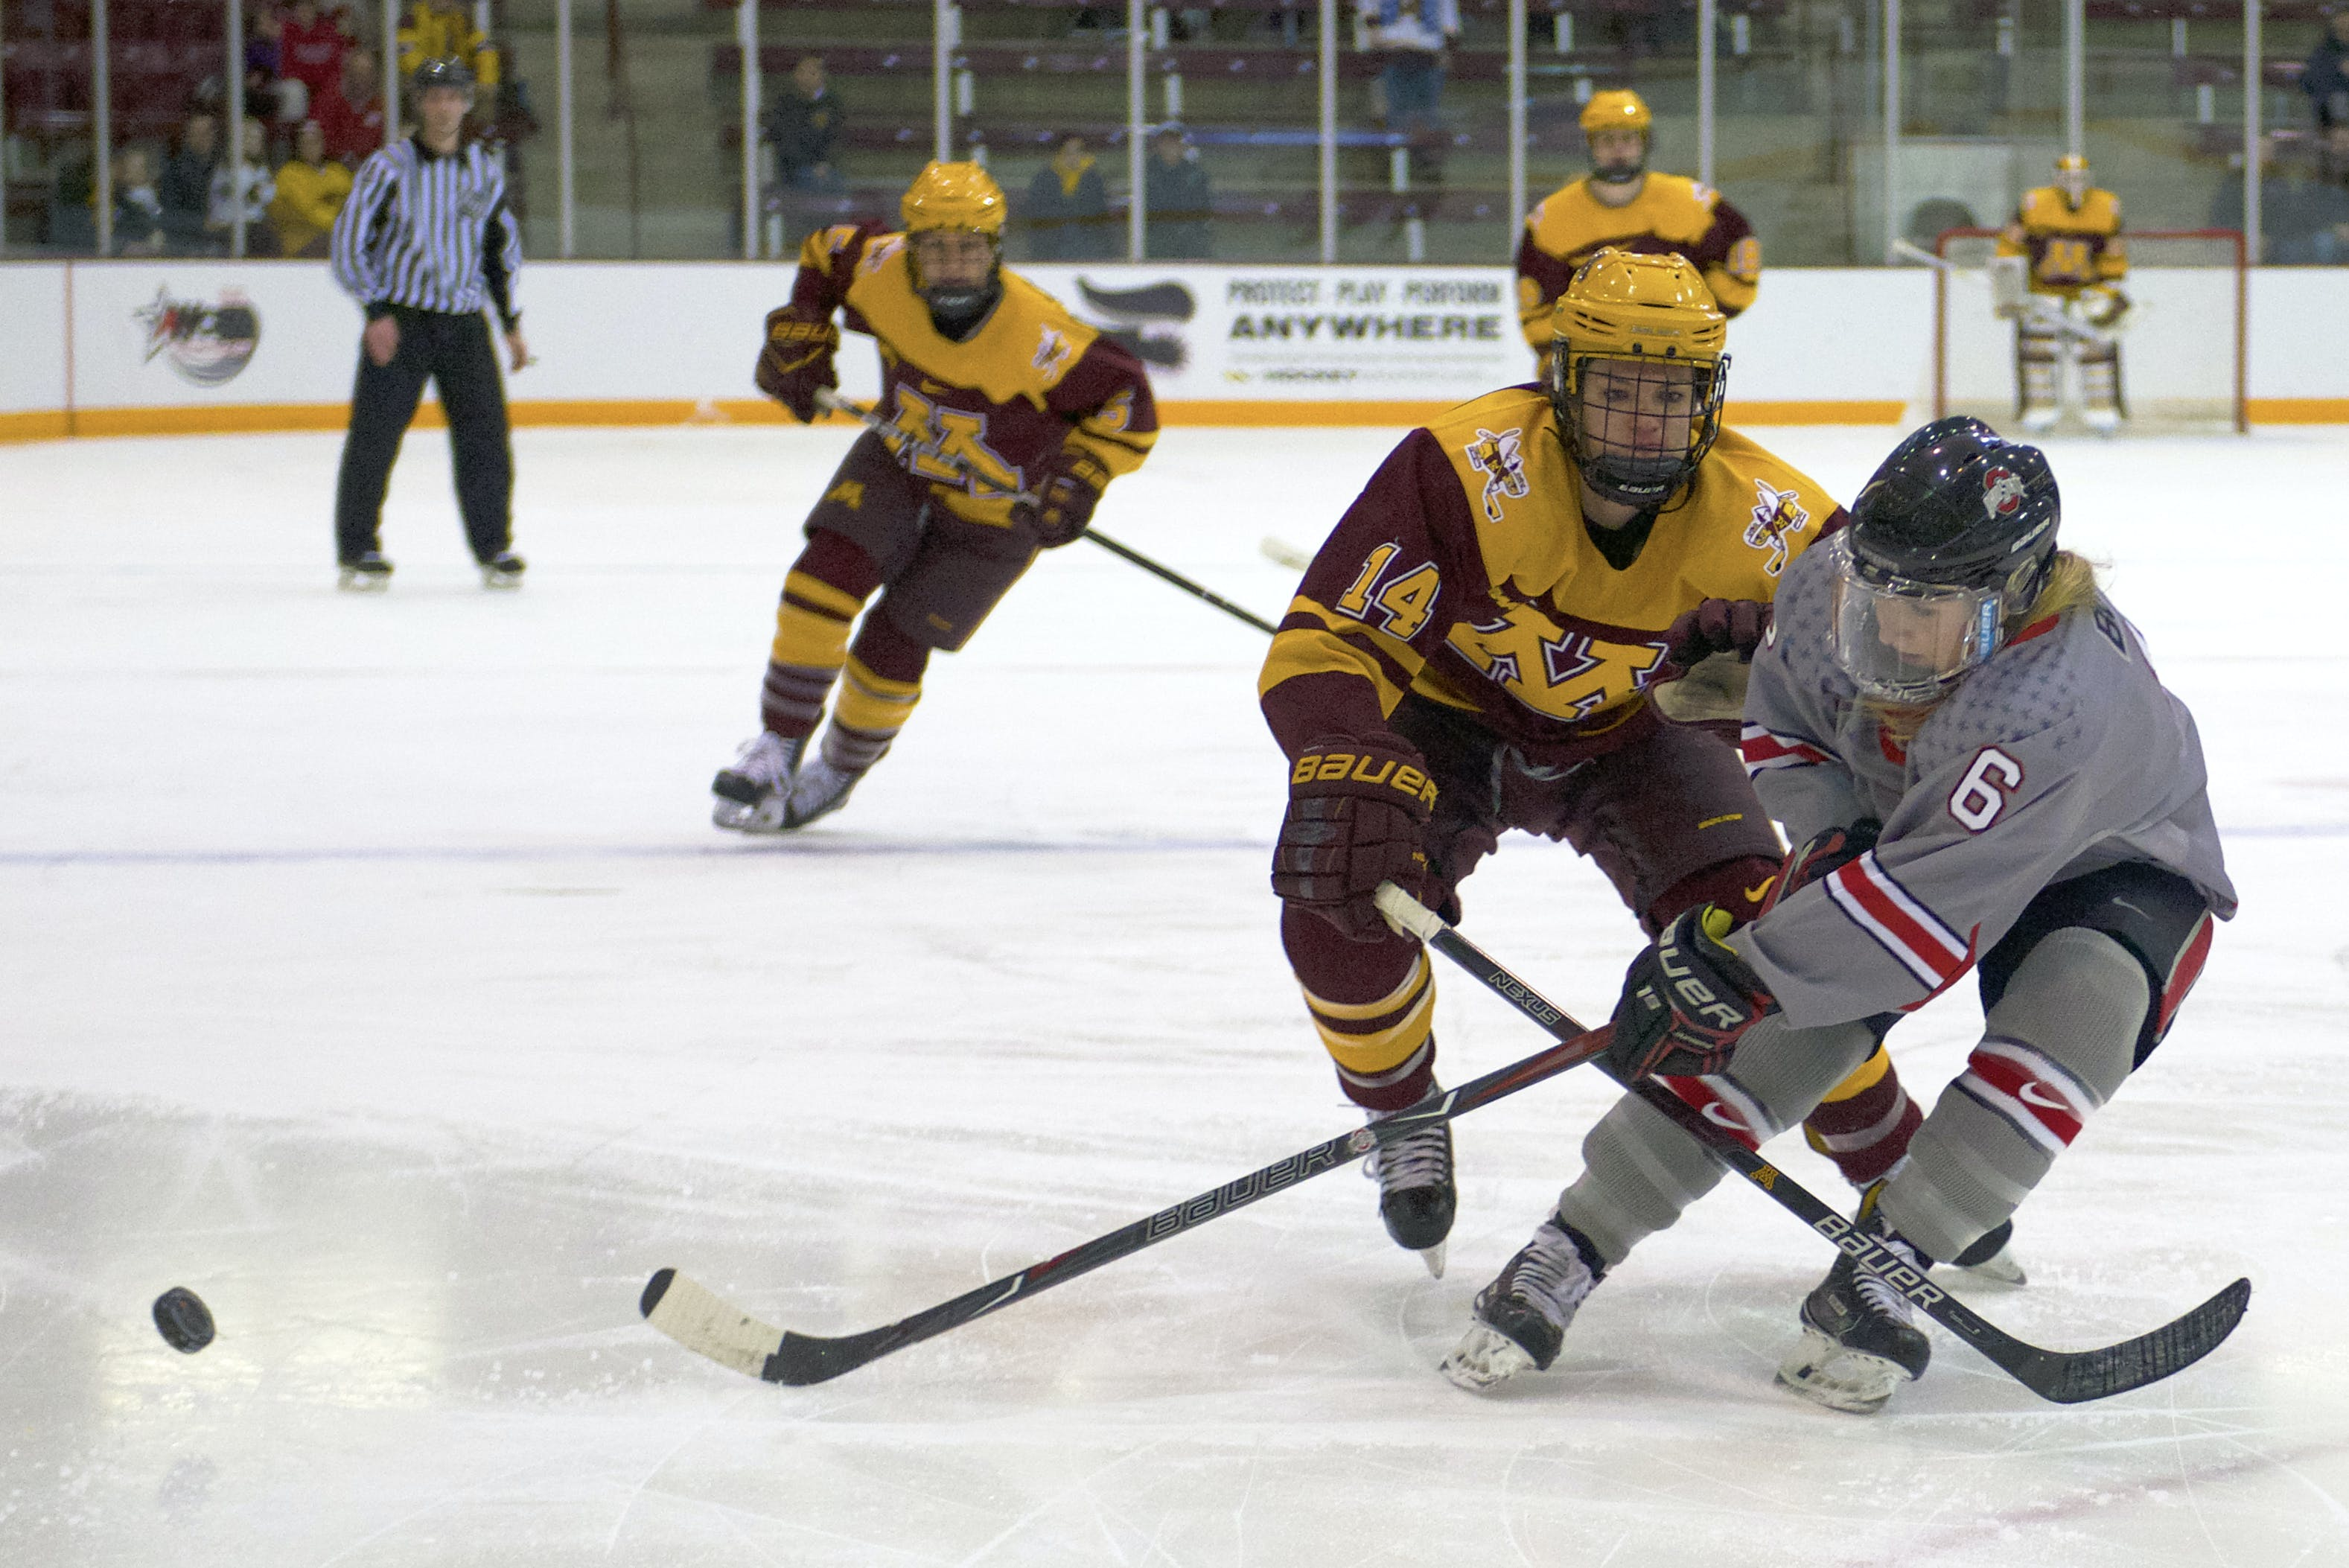 Wellhausen's hat trick powers Wisconsin to WCHA final